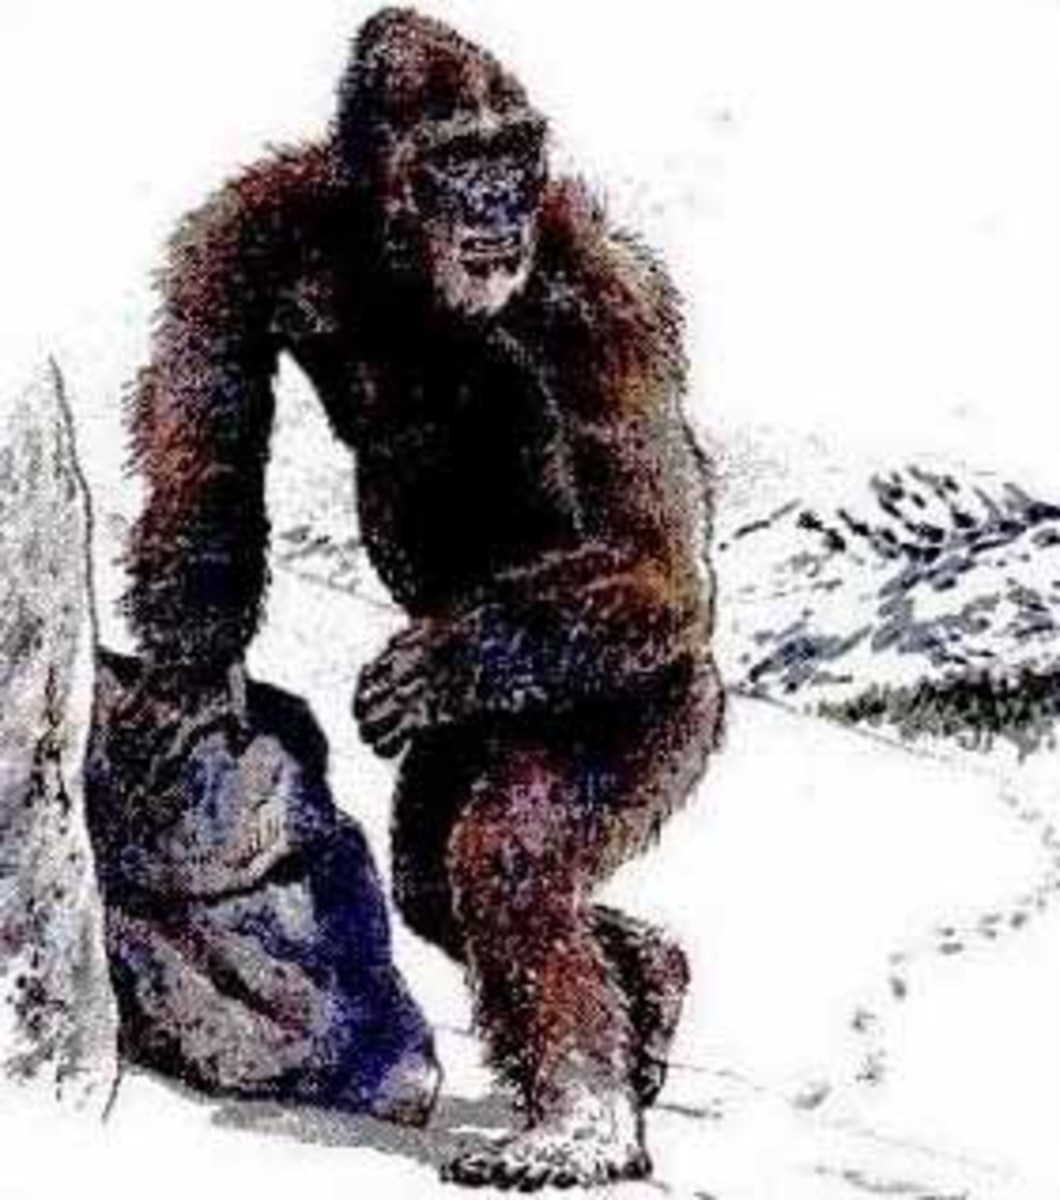 Cryptozoology. Yeti. Bigfoot. Orang Pendek. Alma. Wildmen, Myth or reality?